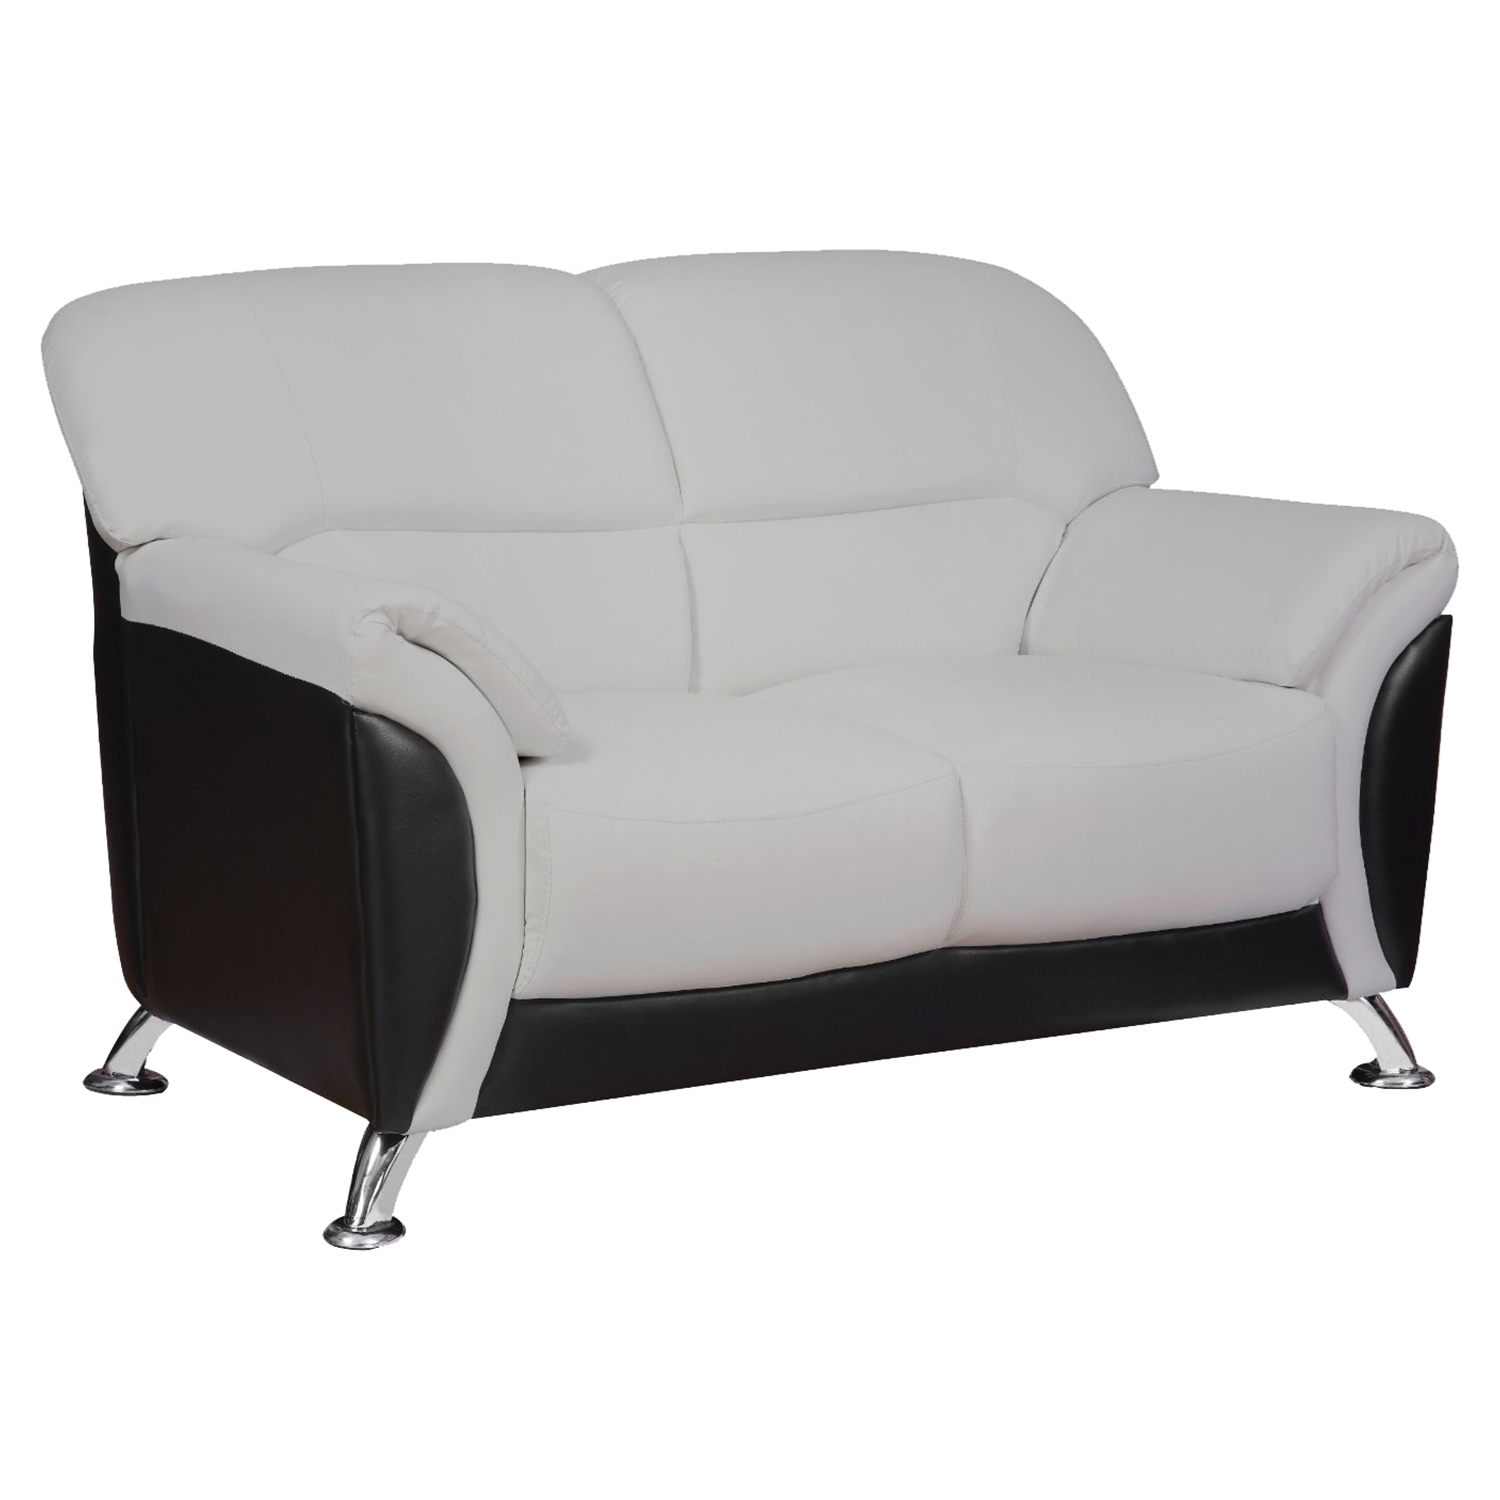 Maxwell Loveseat in Light Gray/Black